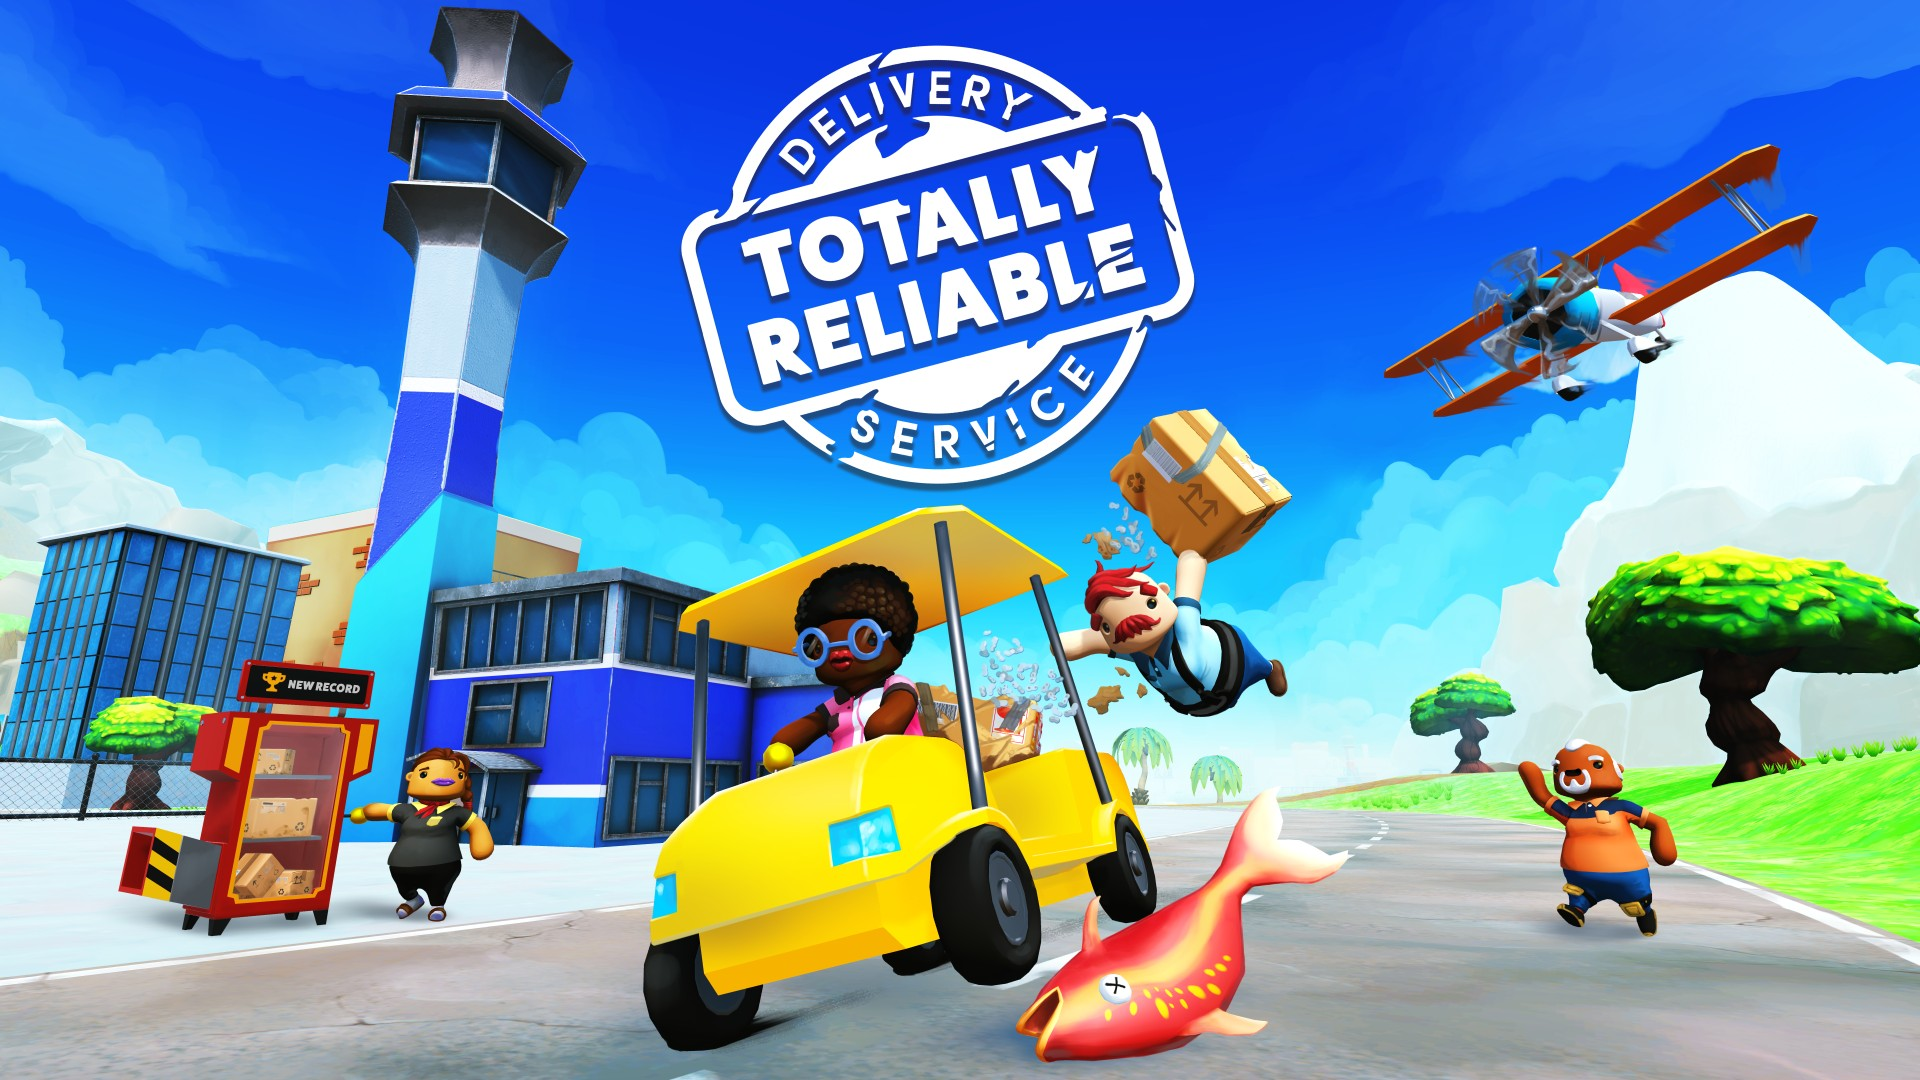 Video For Totally Reliable Delivery Service Arrives Today with Xbox Game Pass